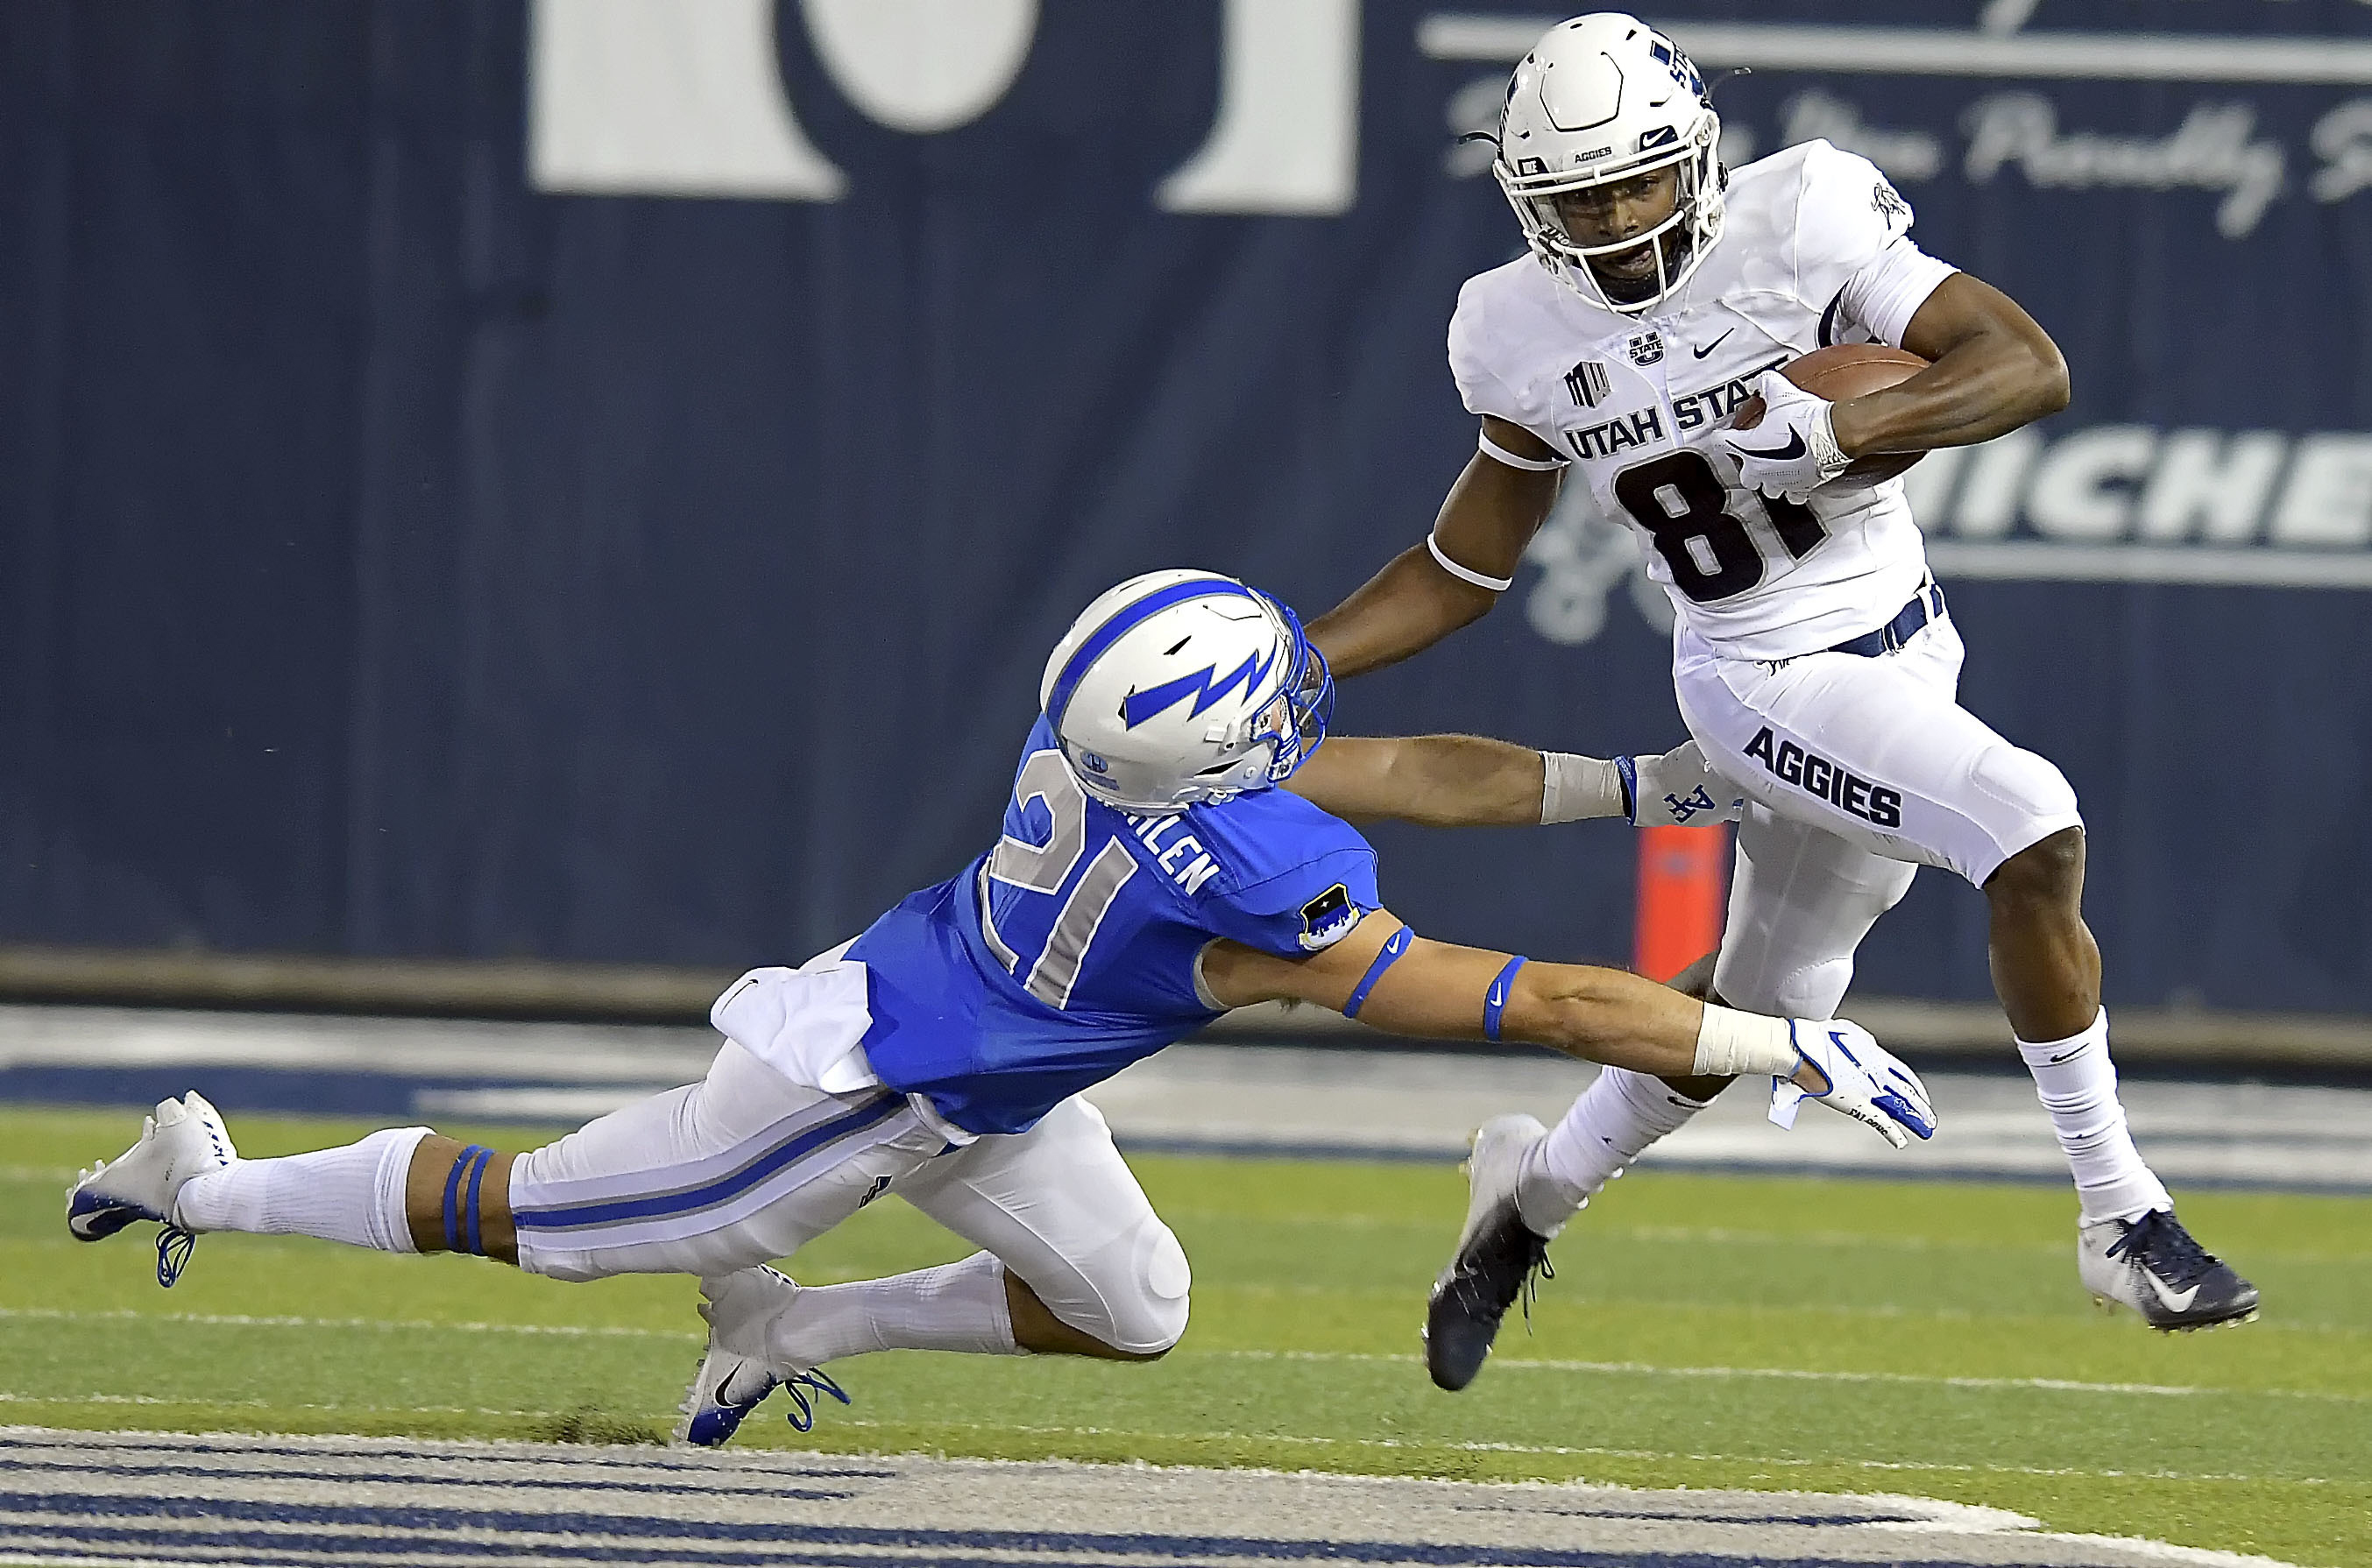 How Savon Scarver became scary good for the Aggies - Deseret